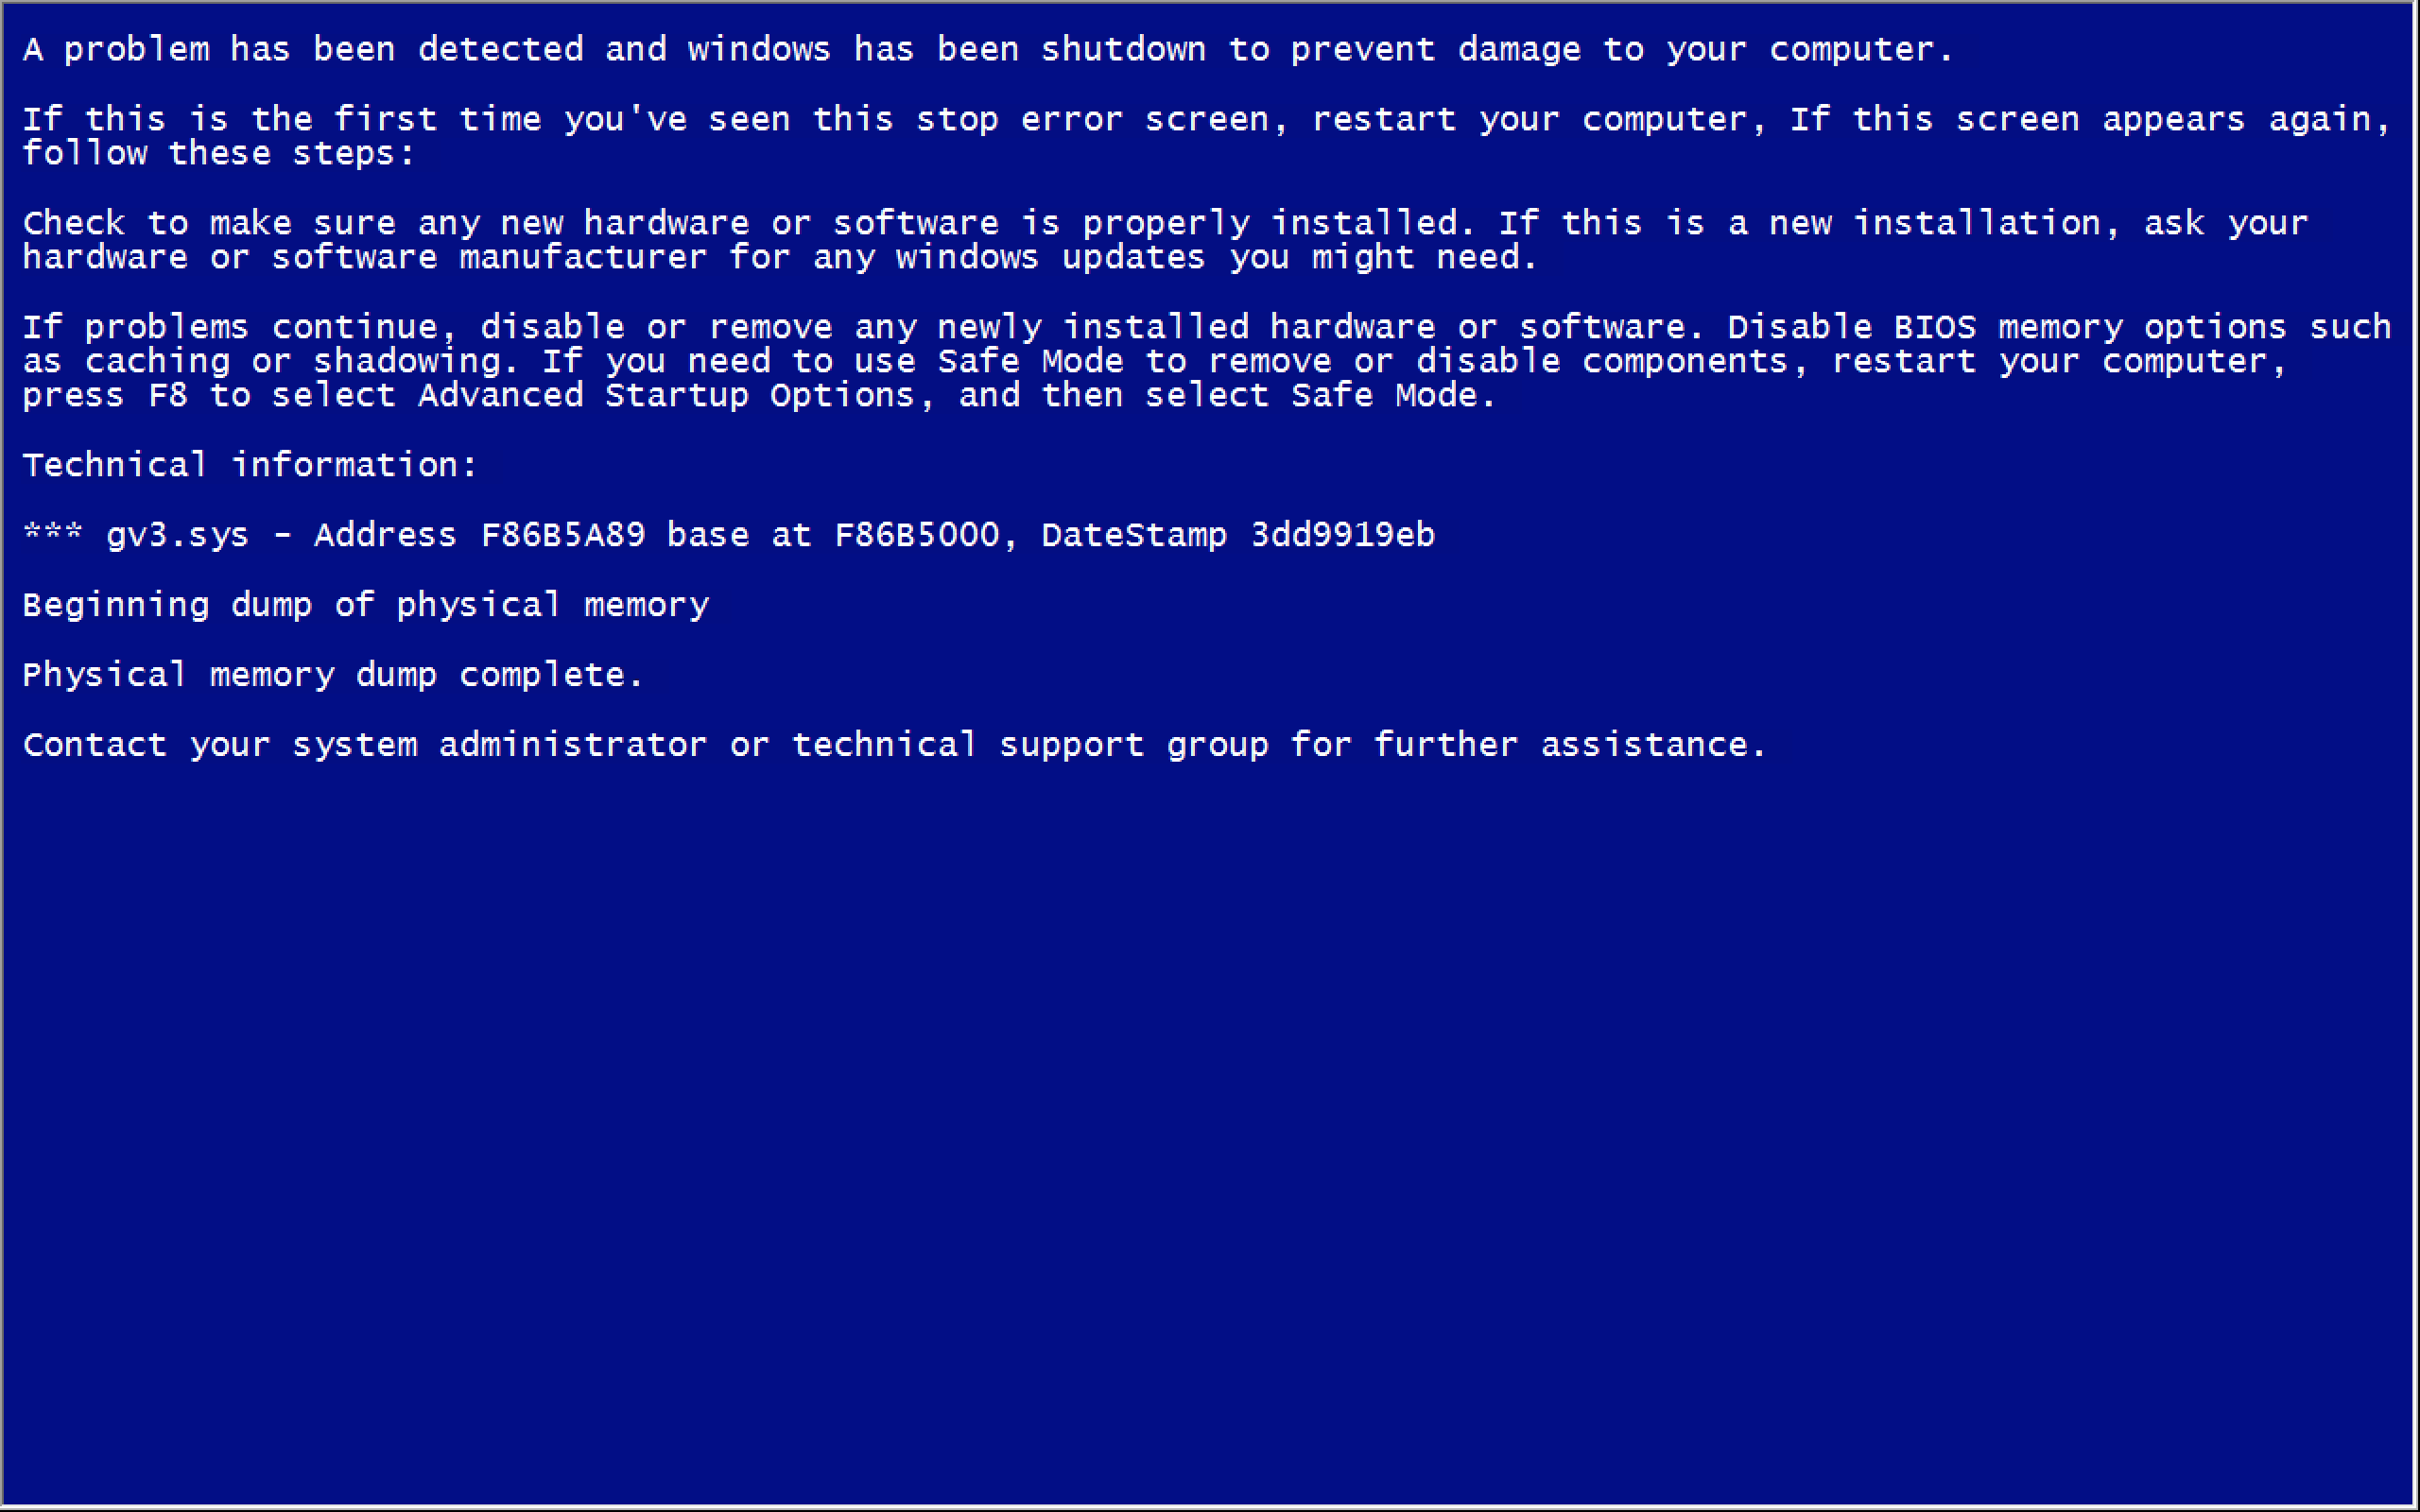 immagine bsod windows